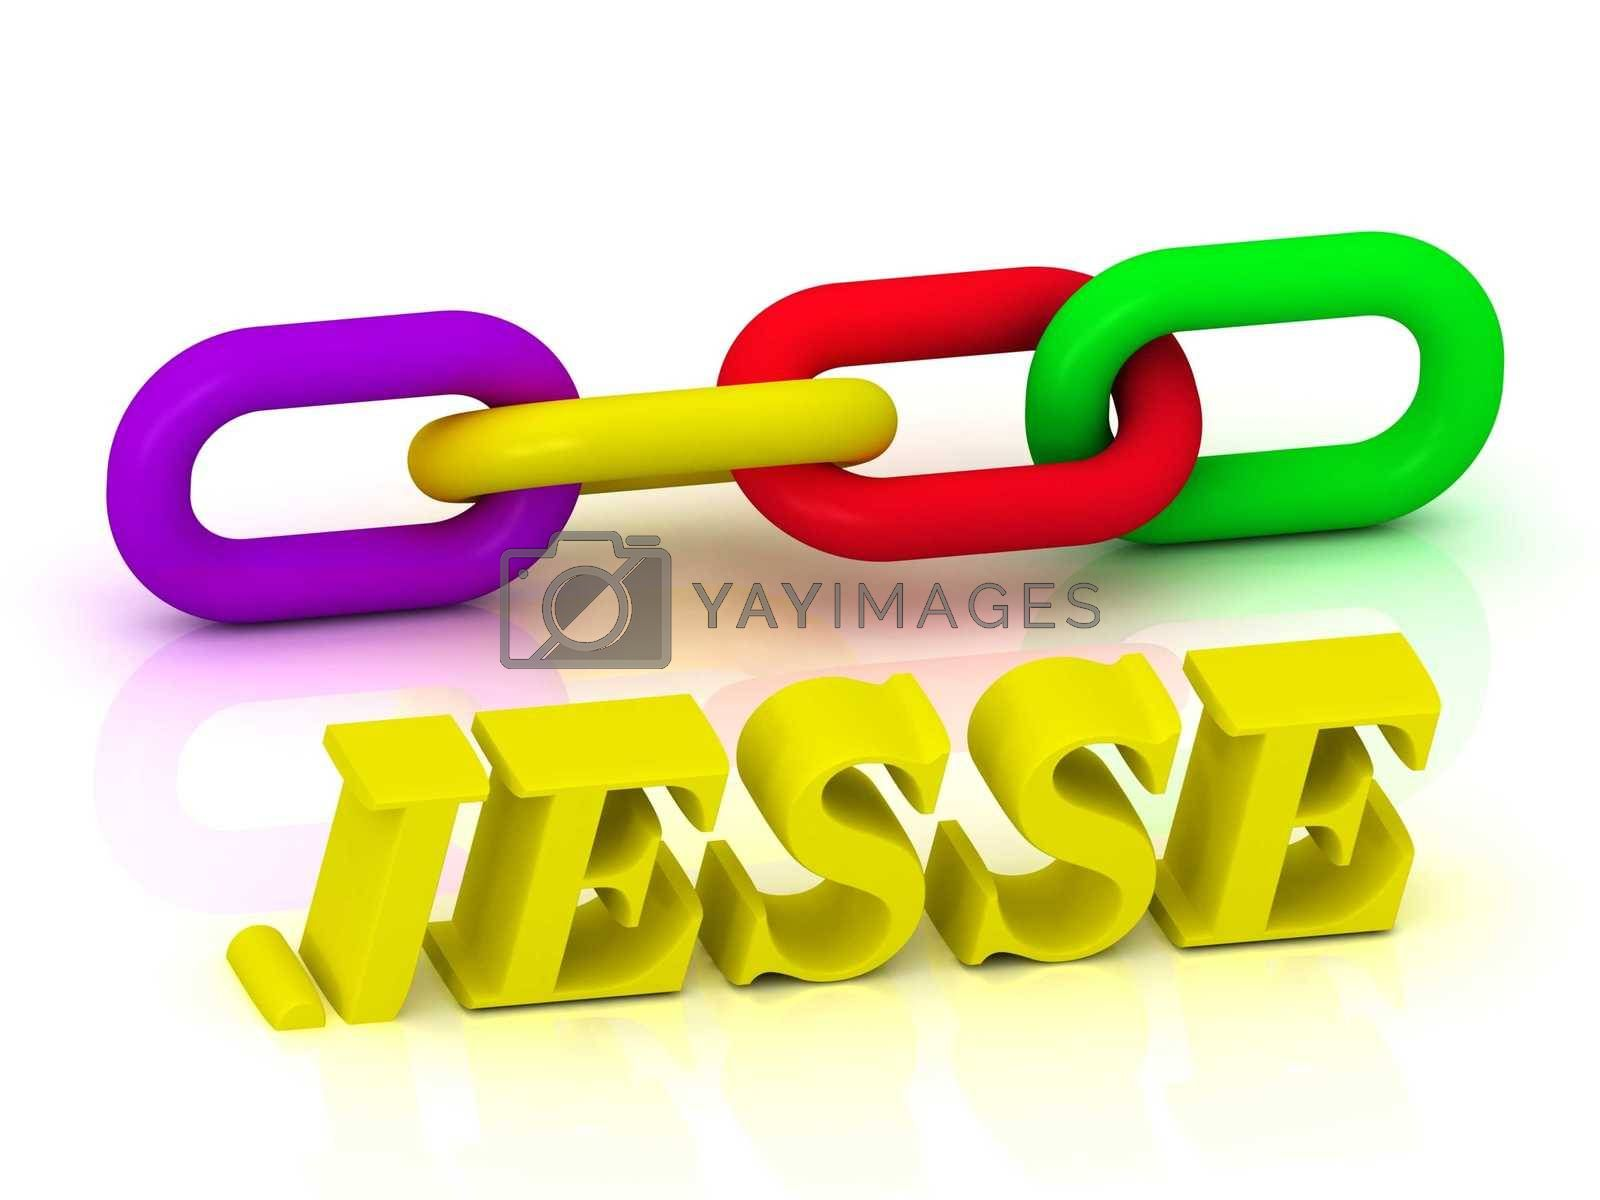 JESSE- Name and Family of bright yellow letters and chain of green, yellow, red section on white background